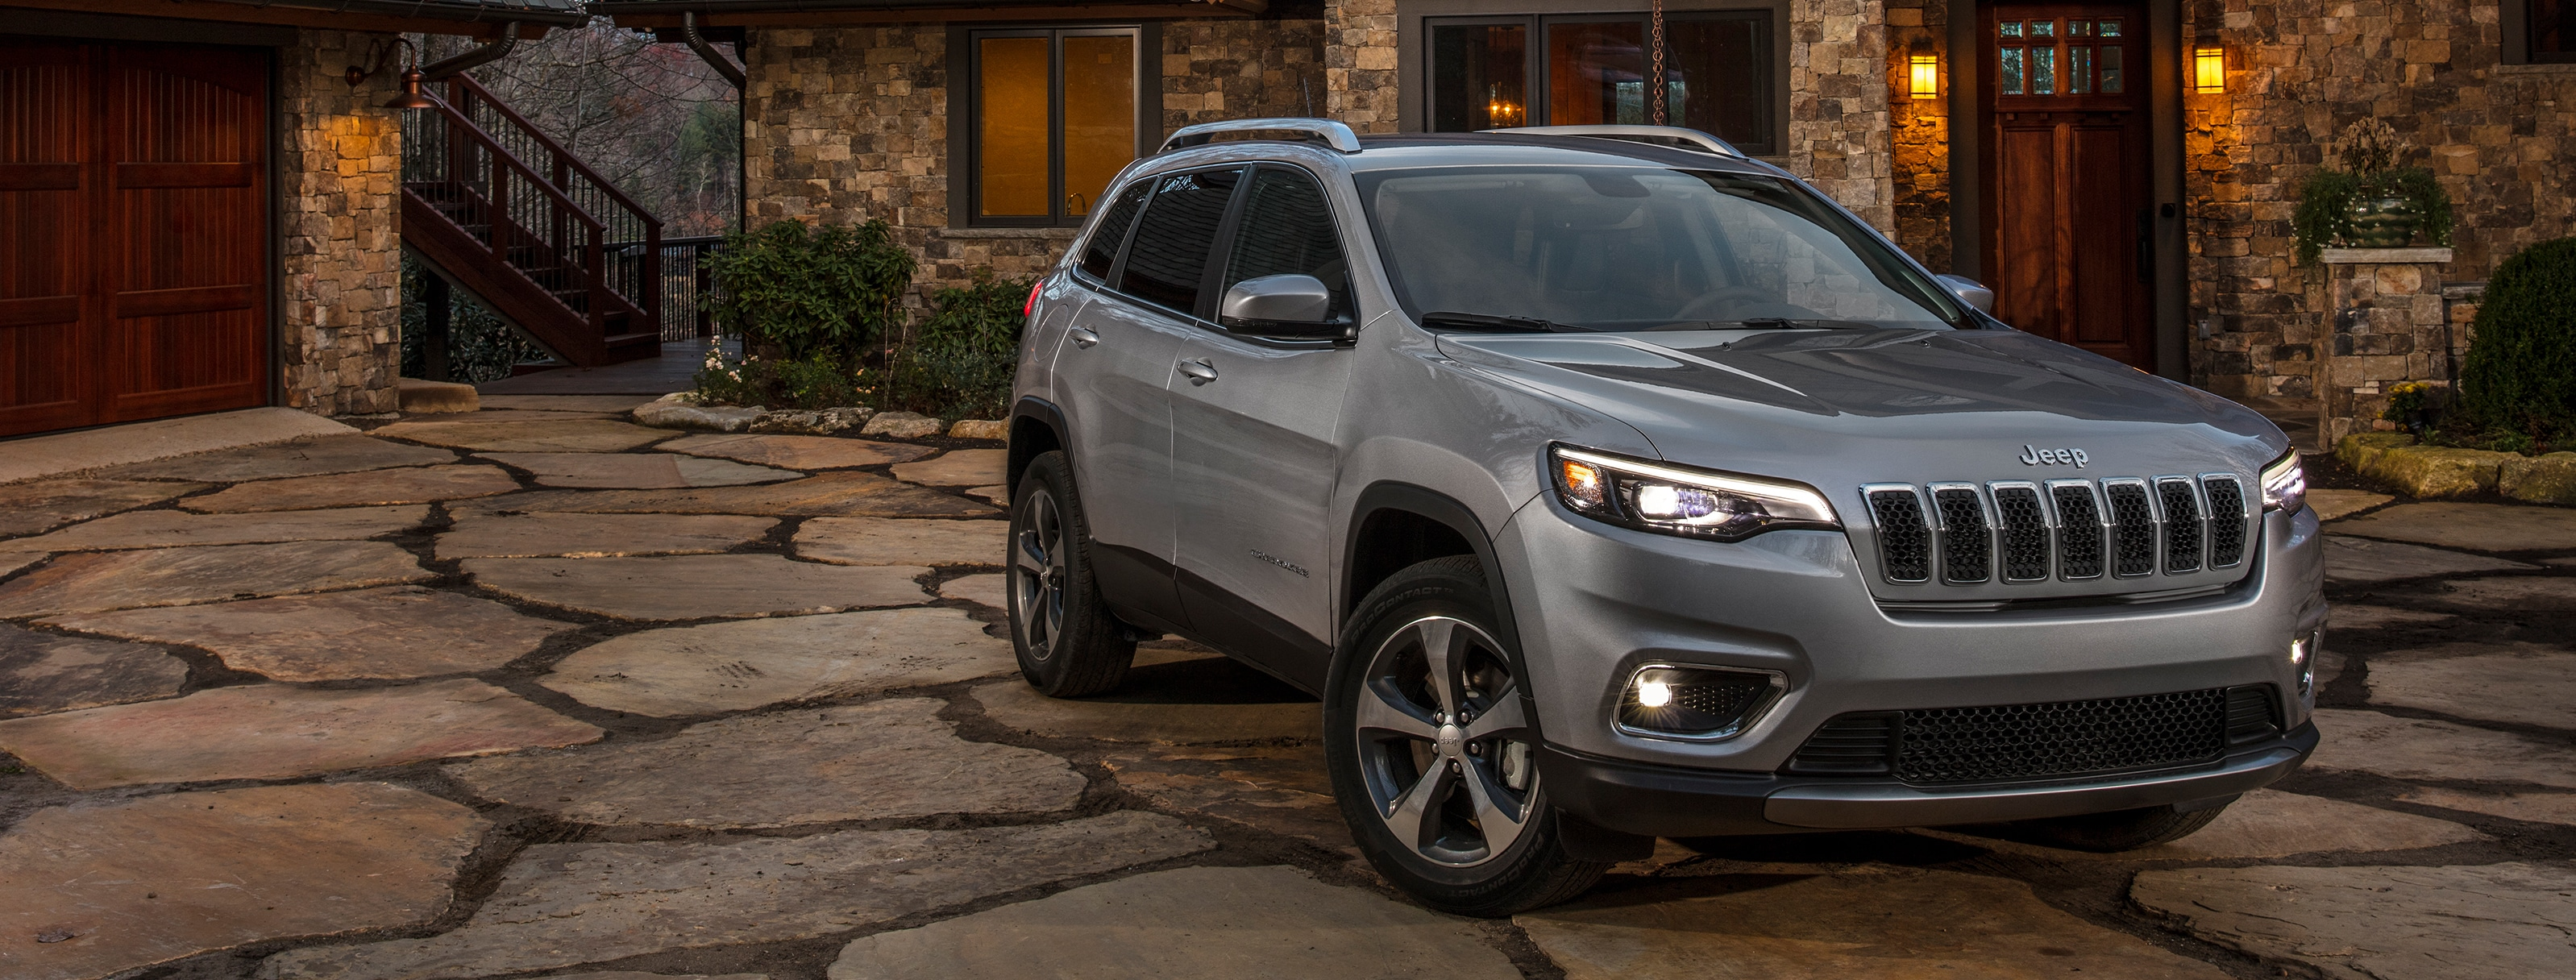 New Jeep Cherokee >> New Jeep Cherokee Suv For Sale Near Wooster